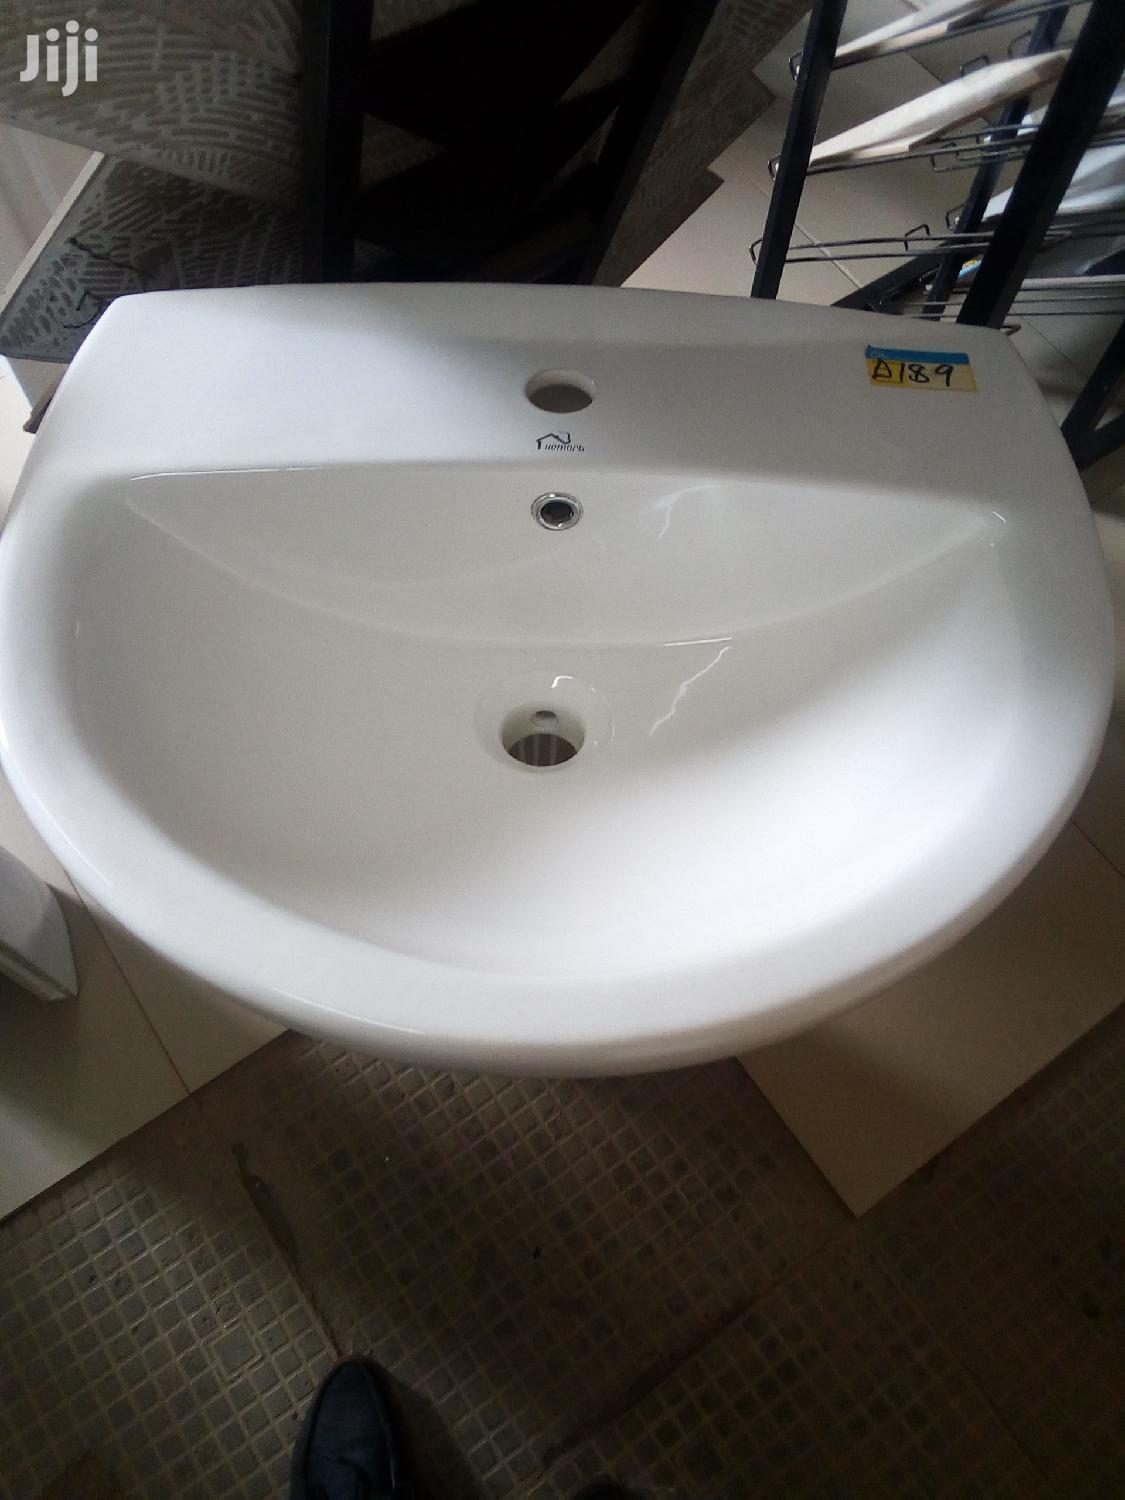 Big Size Wash Hand Basin | Plumbing & Water Supply for sale in Kampala, Central Region, Uganda